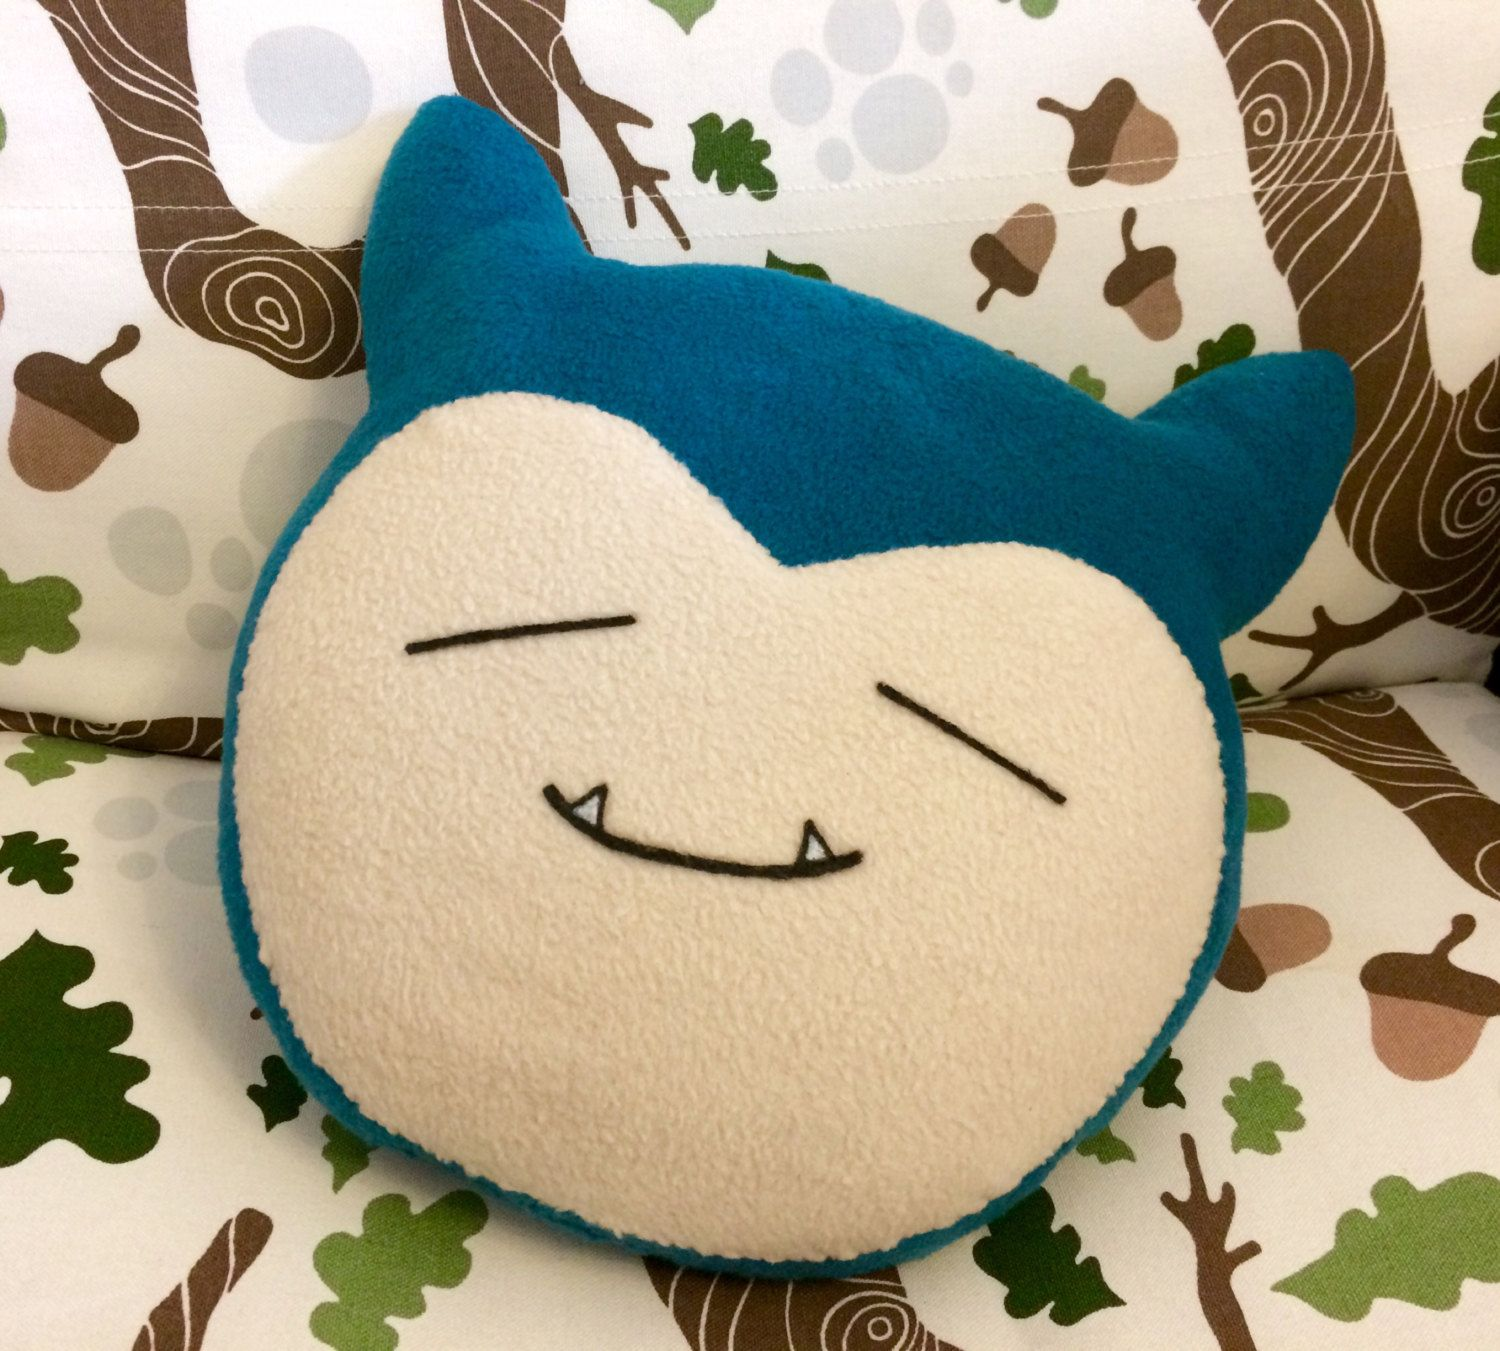 Snorlax face pillow